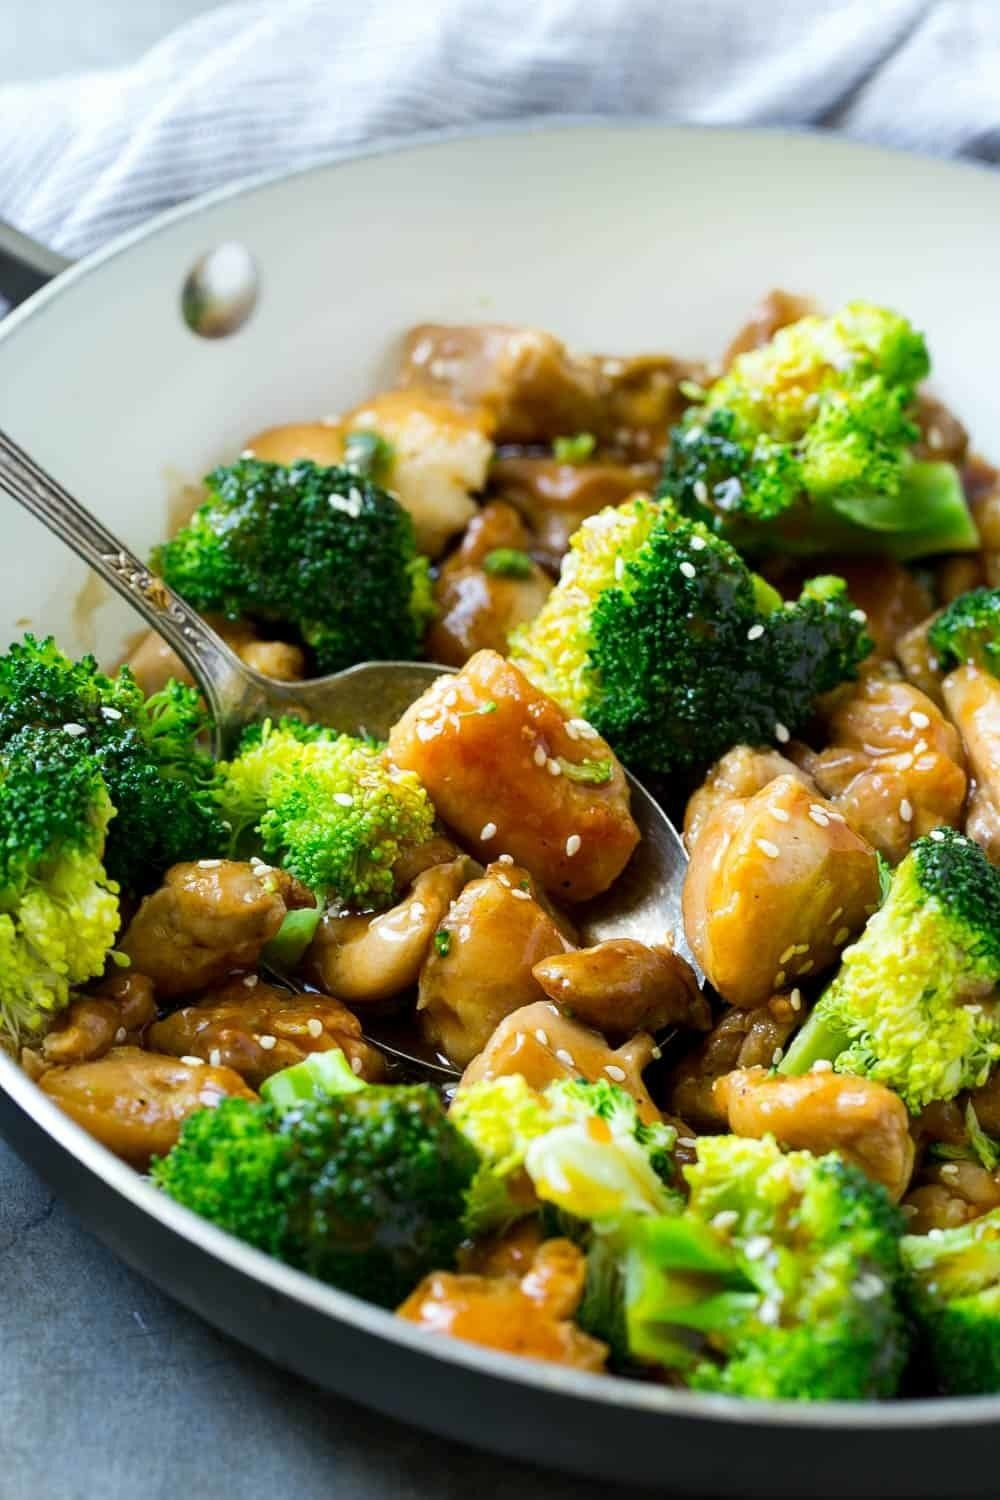 Chicken And Broccoli Stir Fry Recipe Broccoli Stir Fry Healthy Chinese Recipes Chicken Broccoli Stir Fry